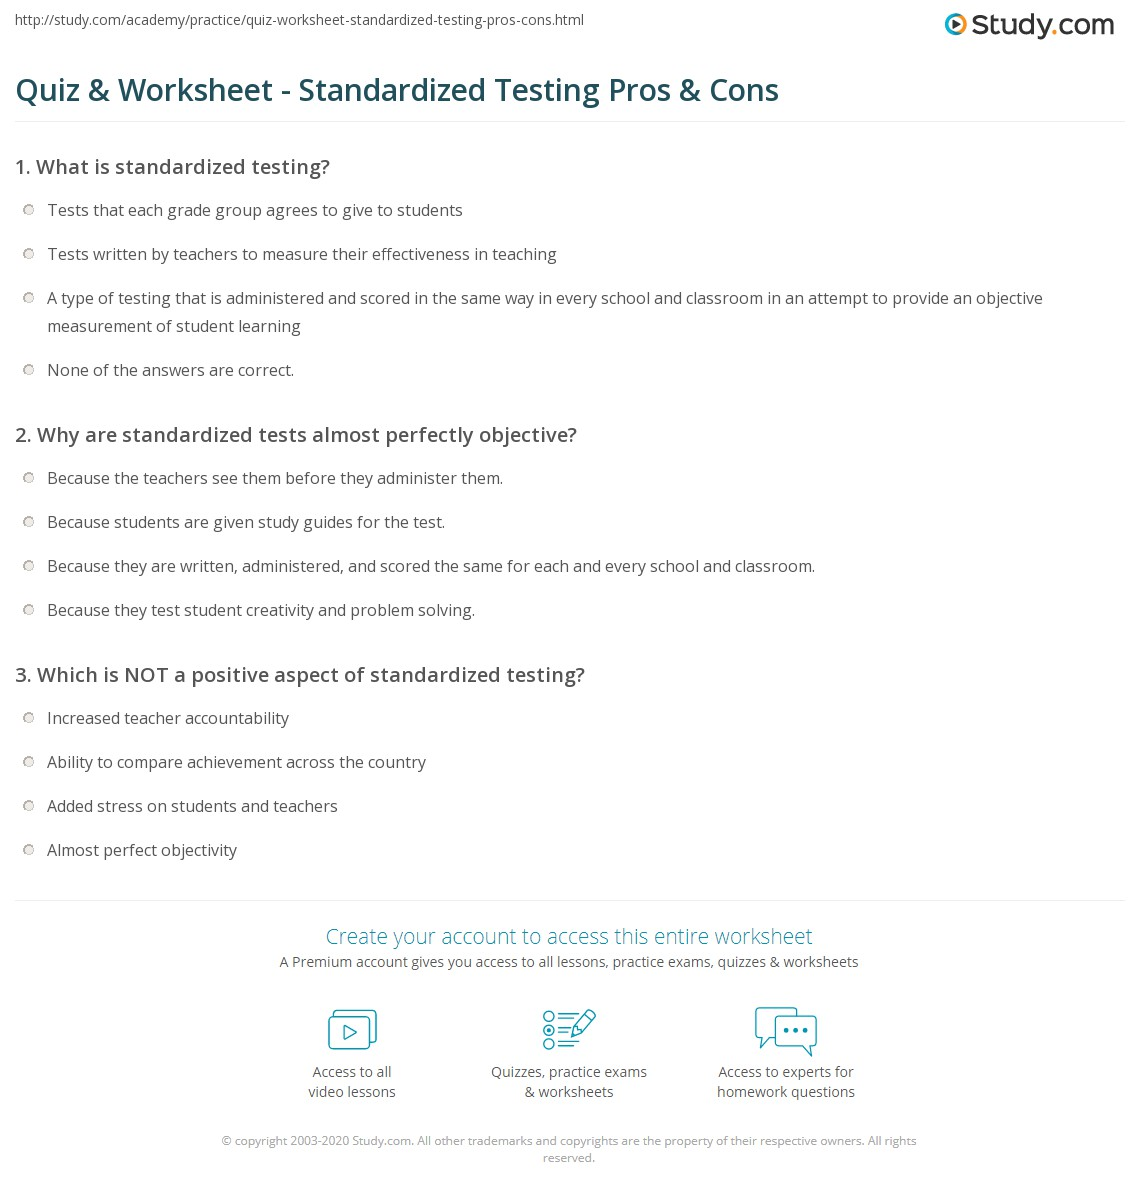 12 Primary Pros and Cons of Standardized Testing